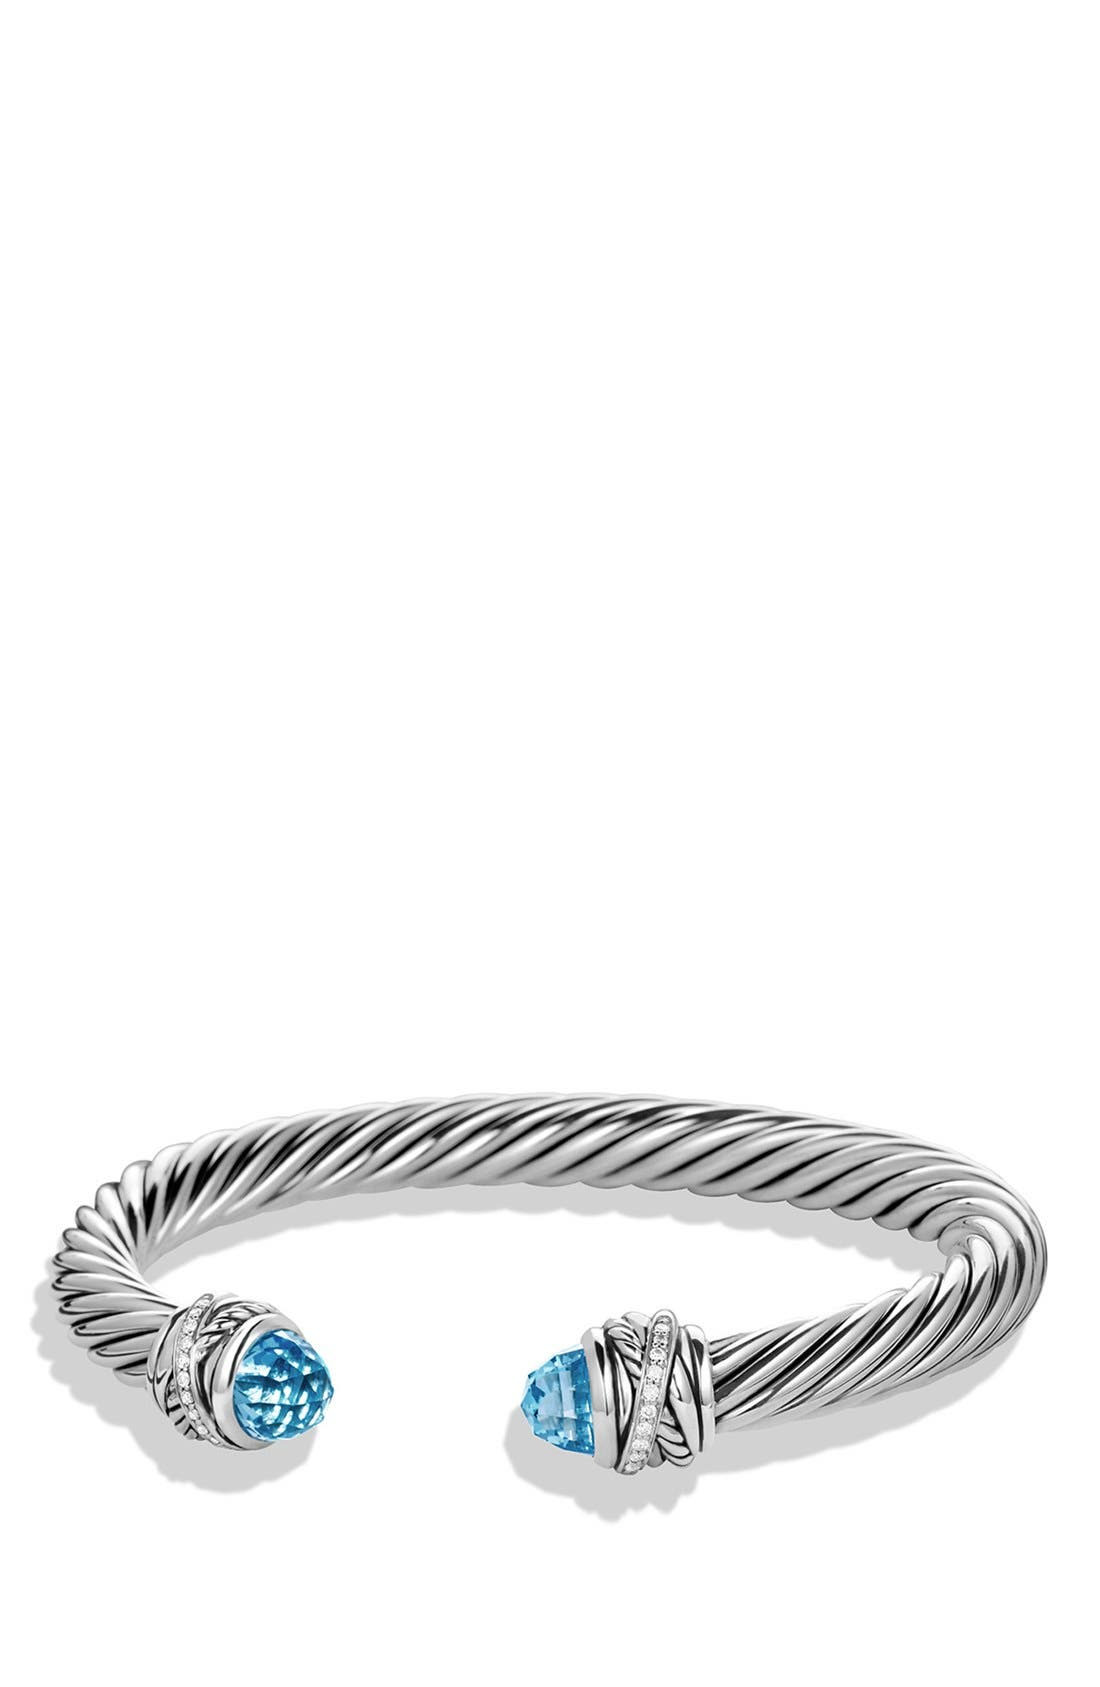 David Yurman 'Crossover' Bracelet with Diamonds